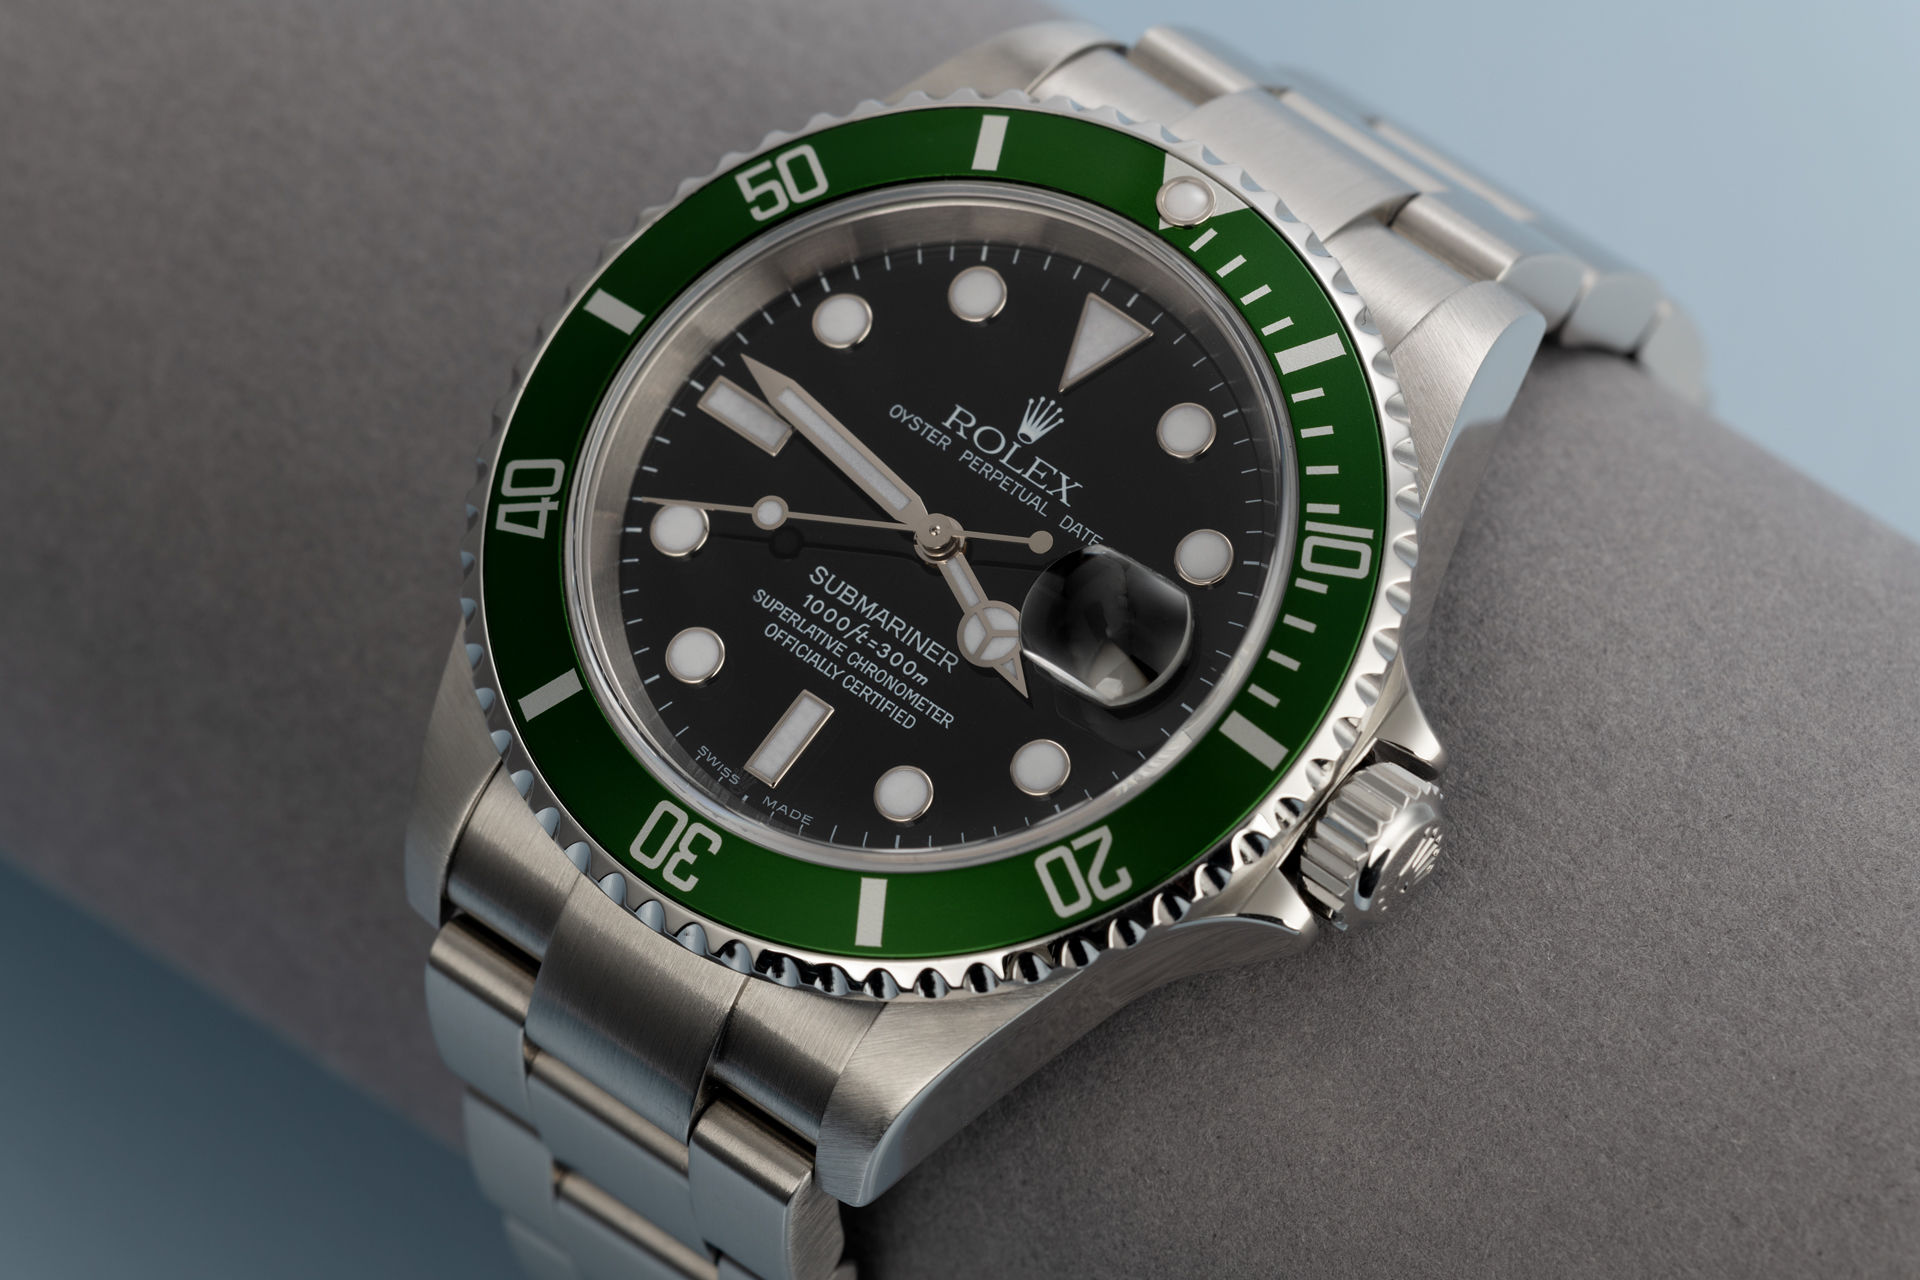 ref 16610LV | Rare First Series 'F49' | Rolex Submariner Date